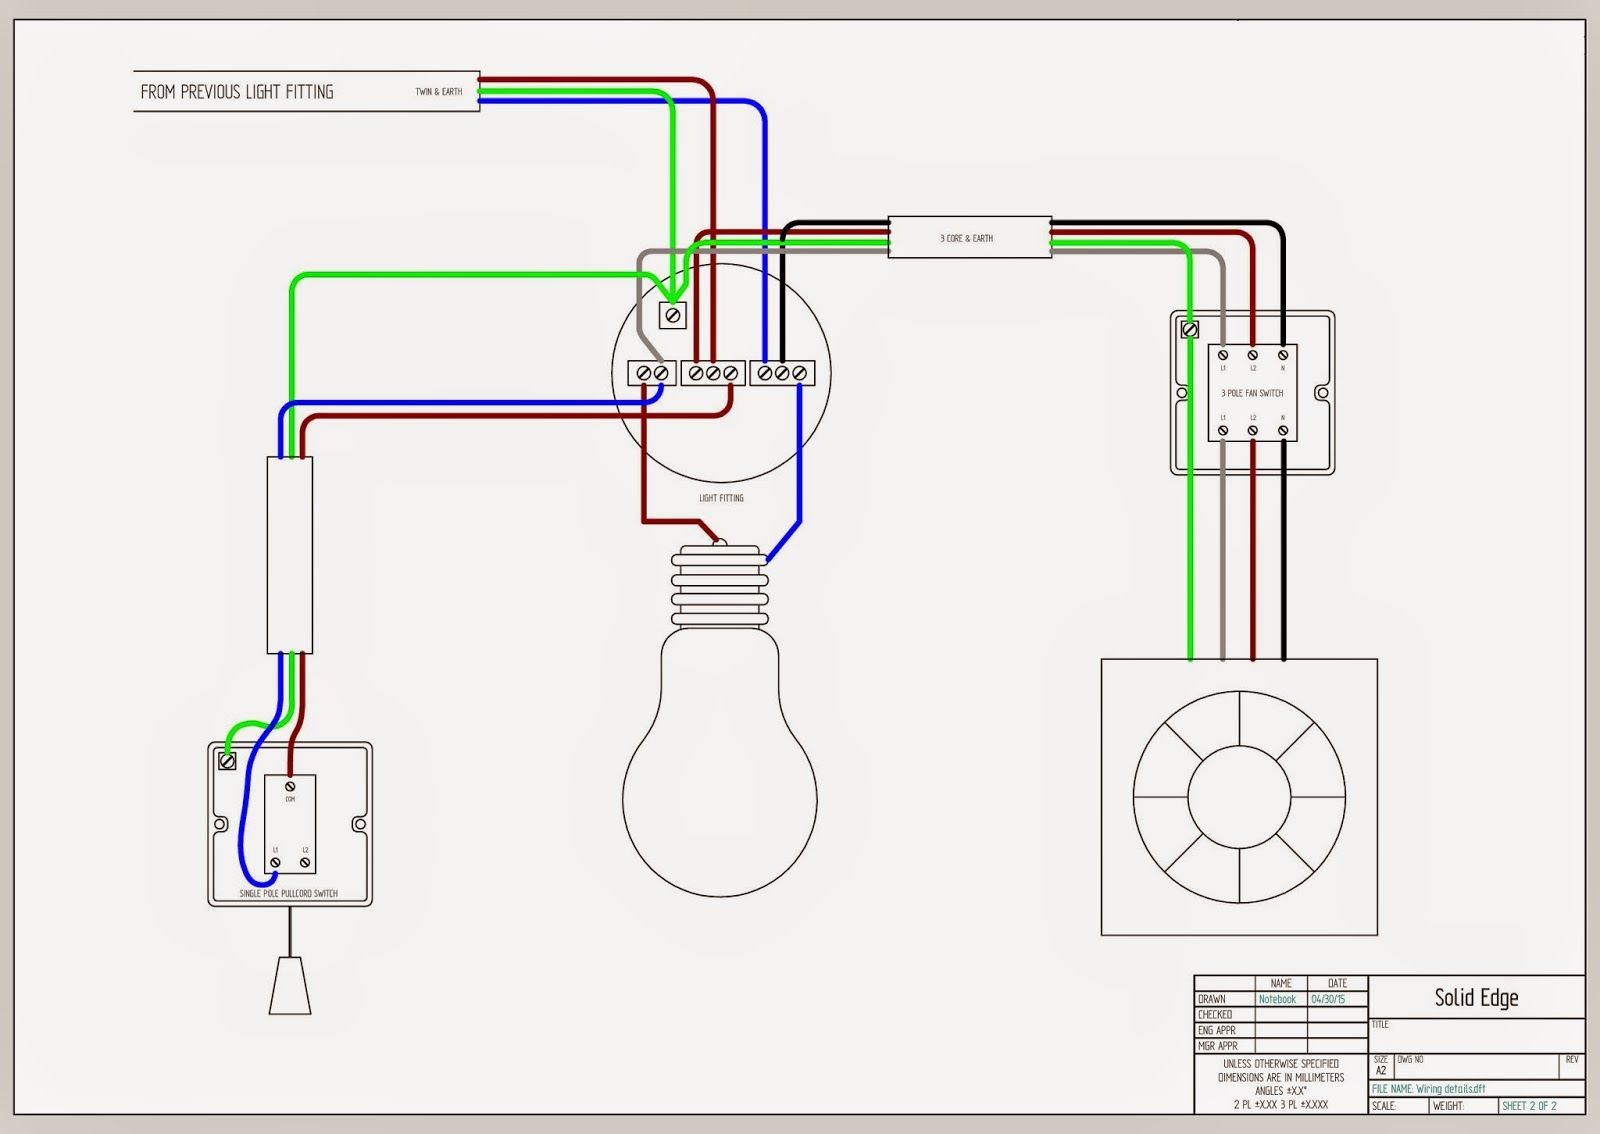 extractor fan with light wiring diagram wiring library rh 53 sekten kritik de